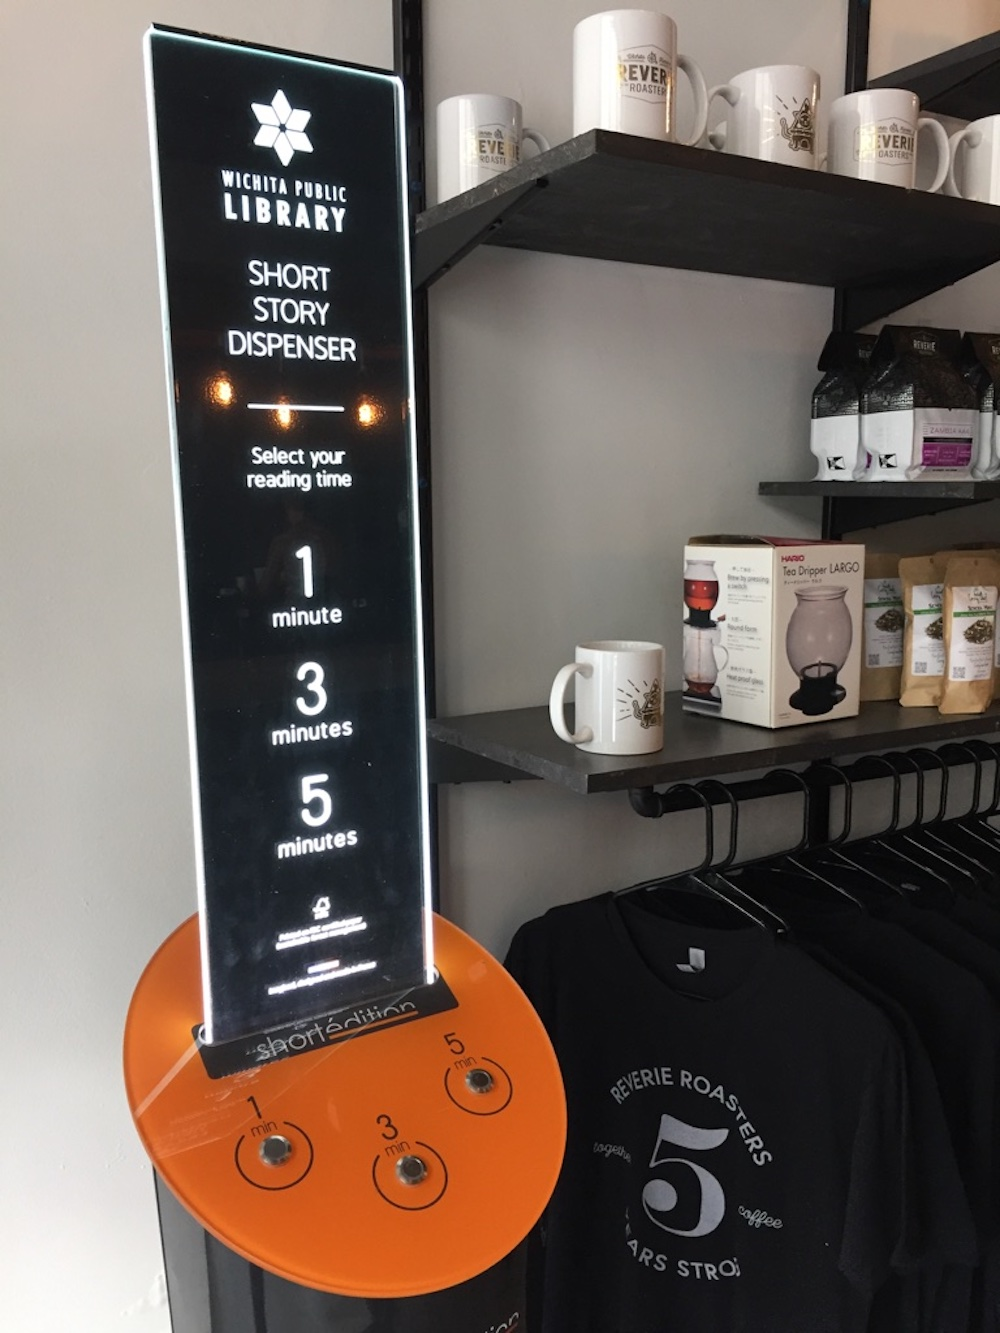 Short story machine from the Wichita Public Library at Reverie Roasters in Wichita, Kansas